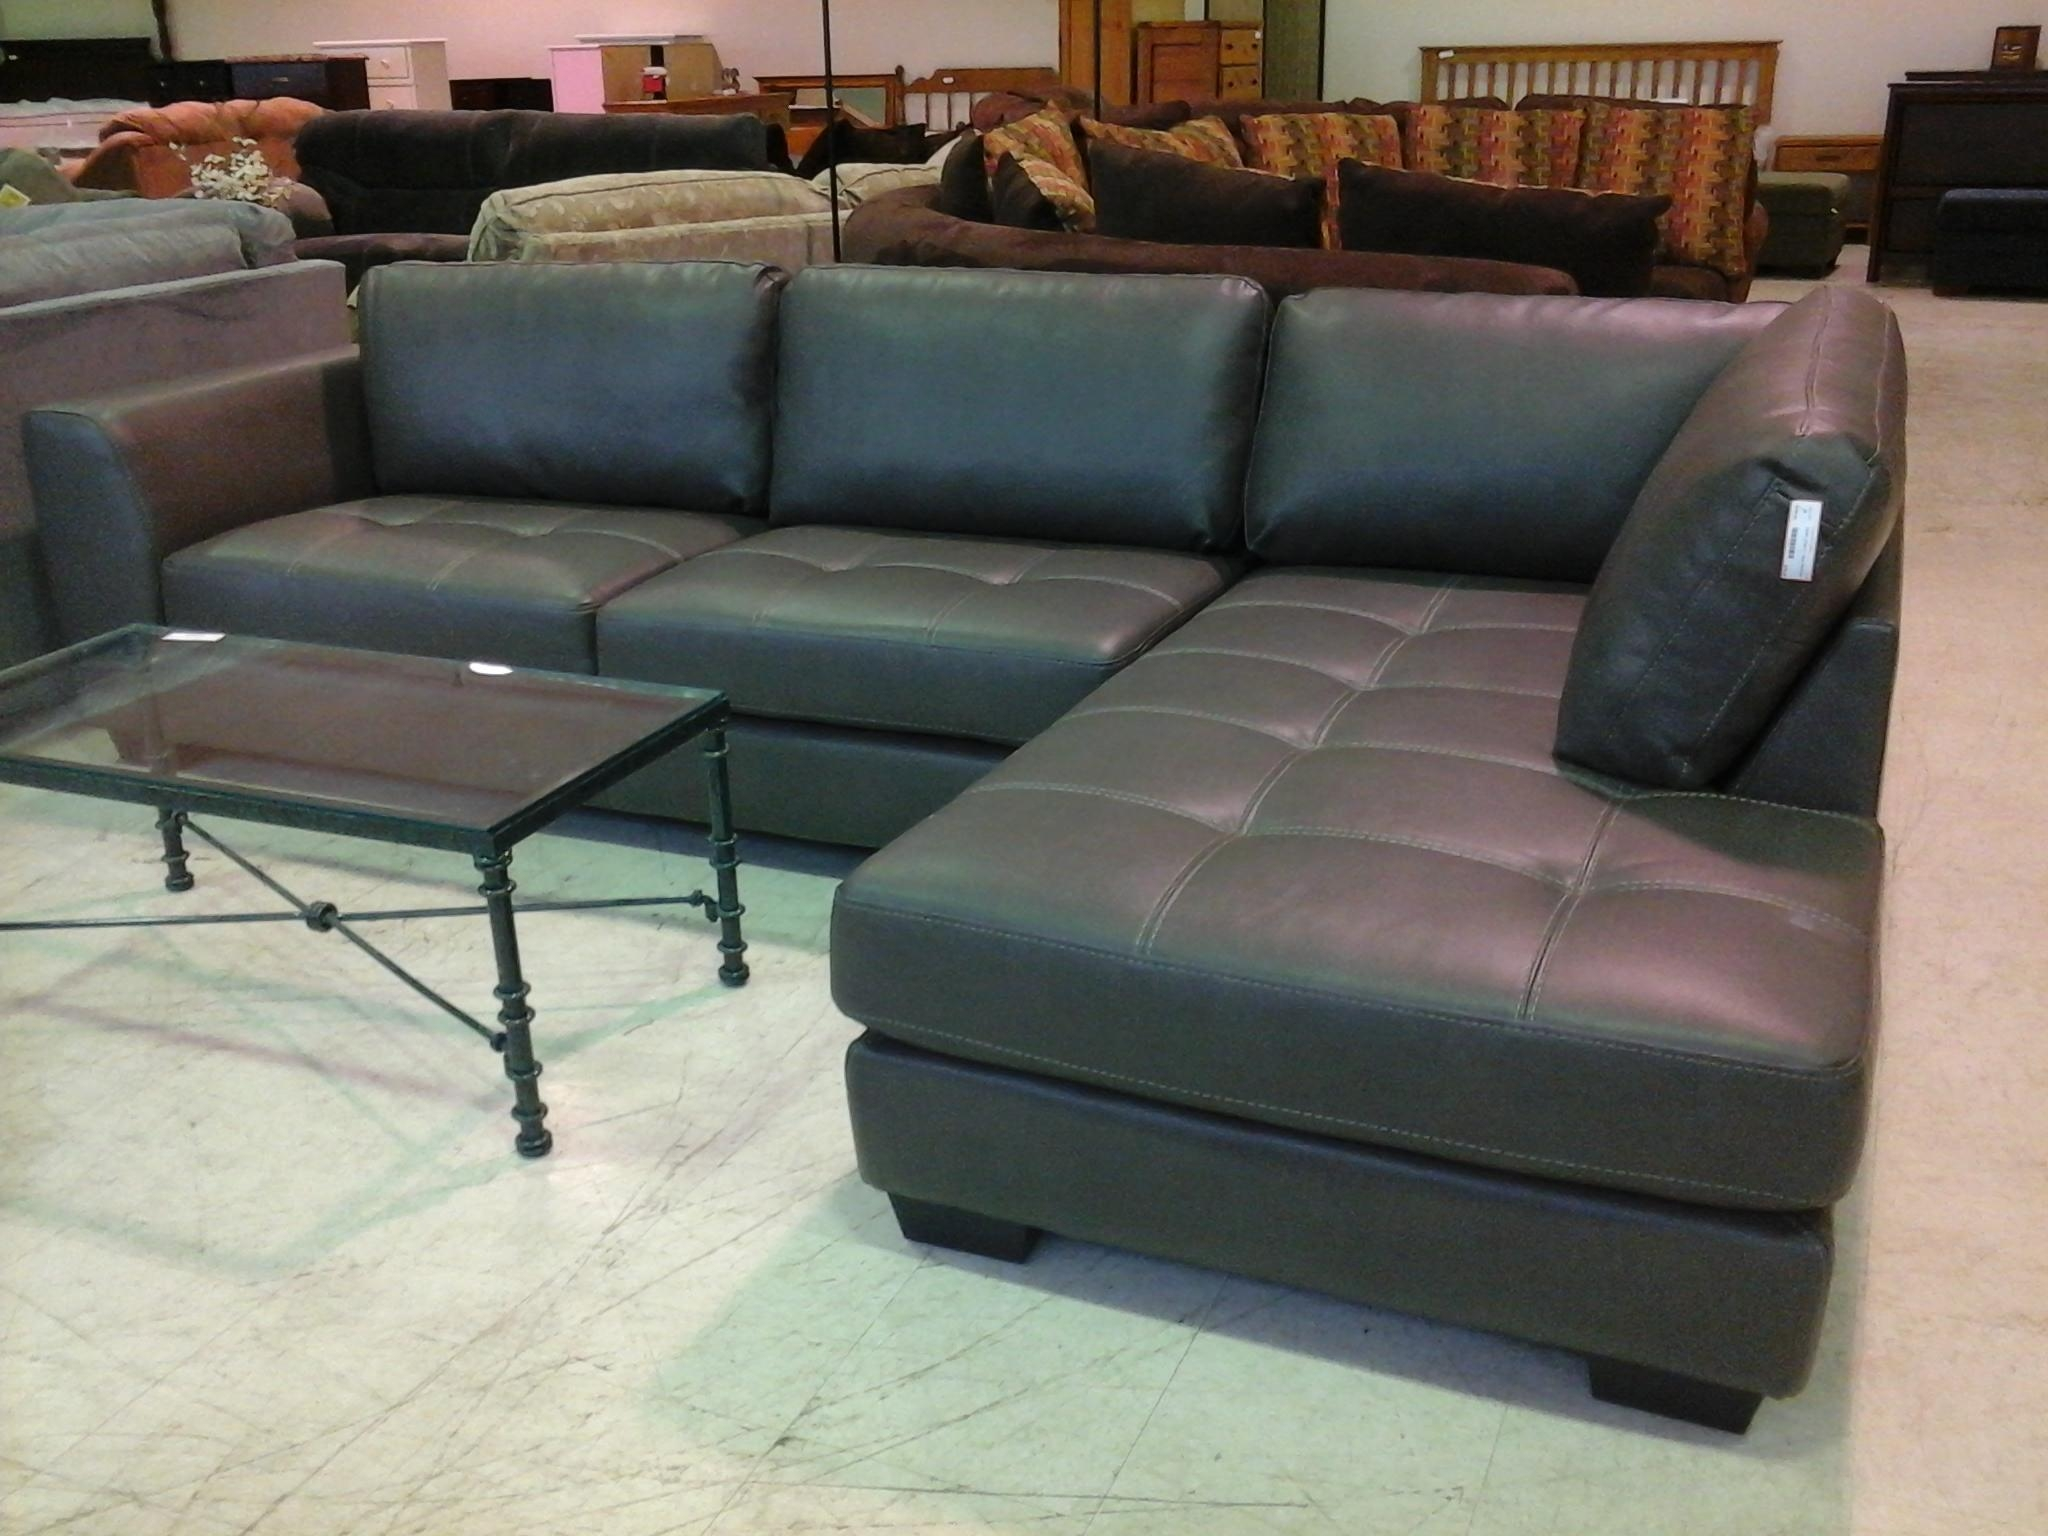 Charcoal Grey Sofa With Chaise | Tehranmix Decoration Intended For Charcoal Grey Leather Sofas (Image 3 of 20)